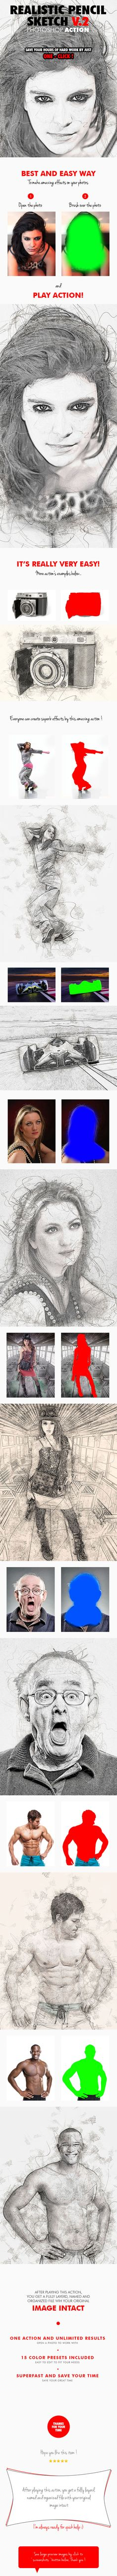 Realistic Pencil Sketch V.2 Photoshop Action - Photo Effects Actions